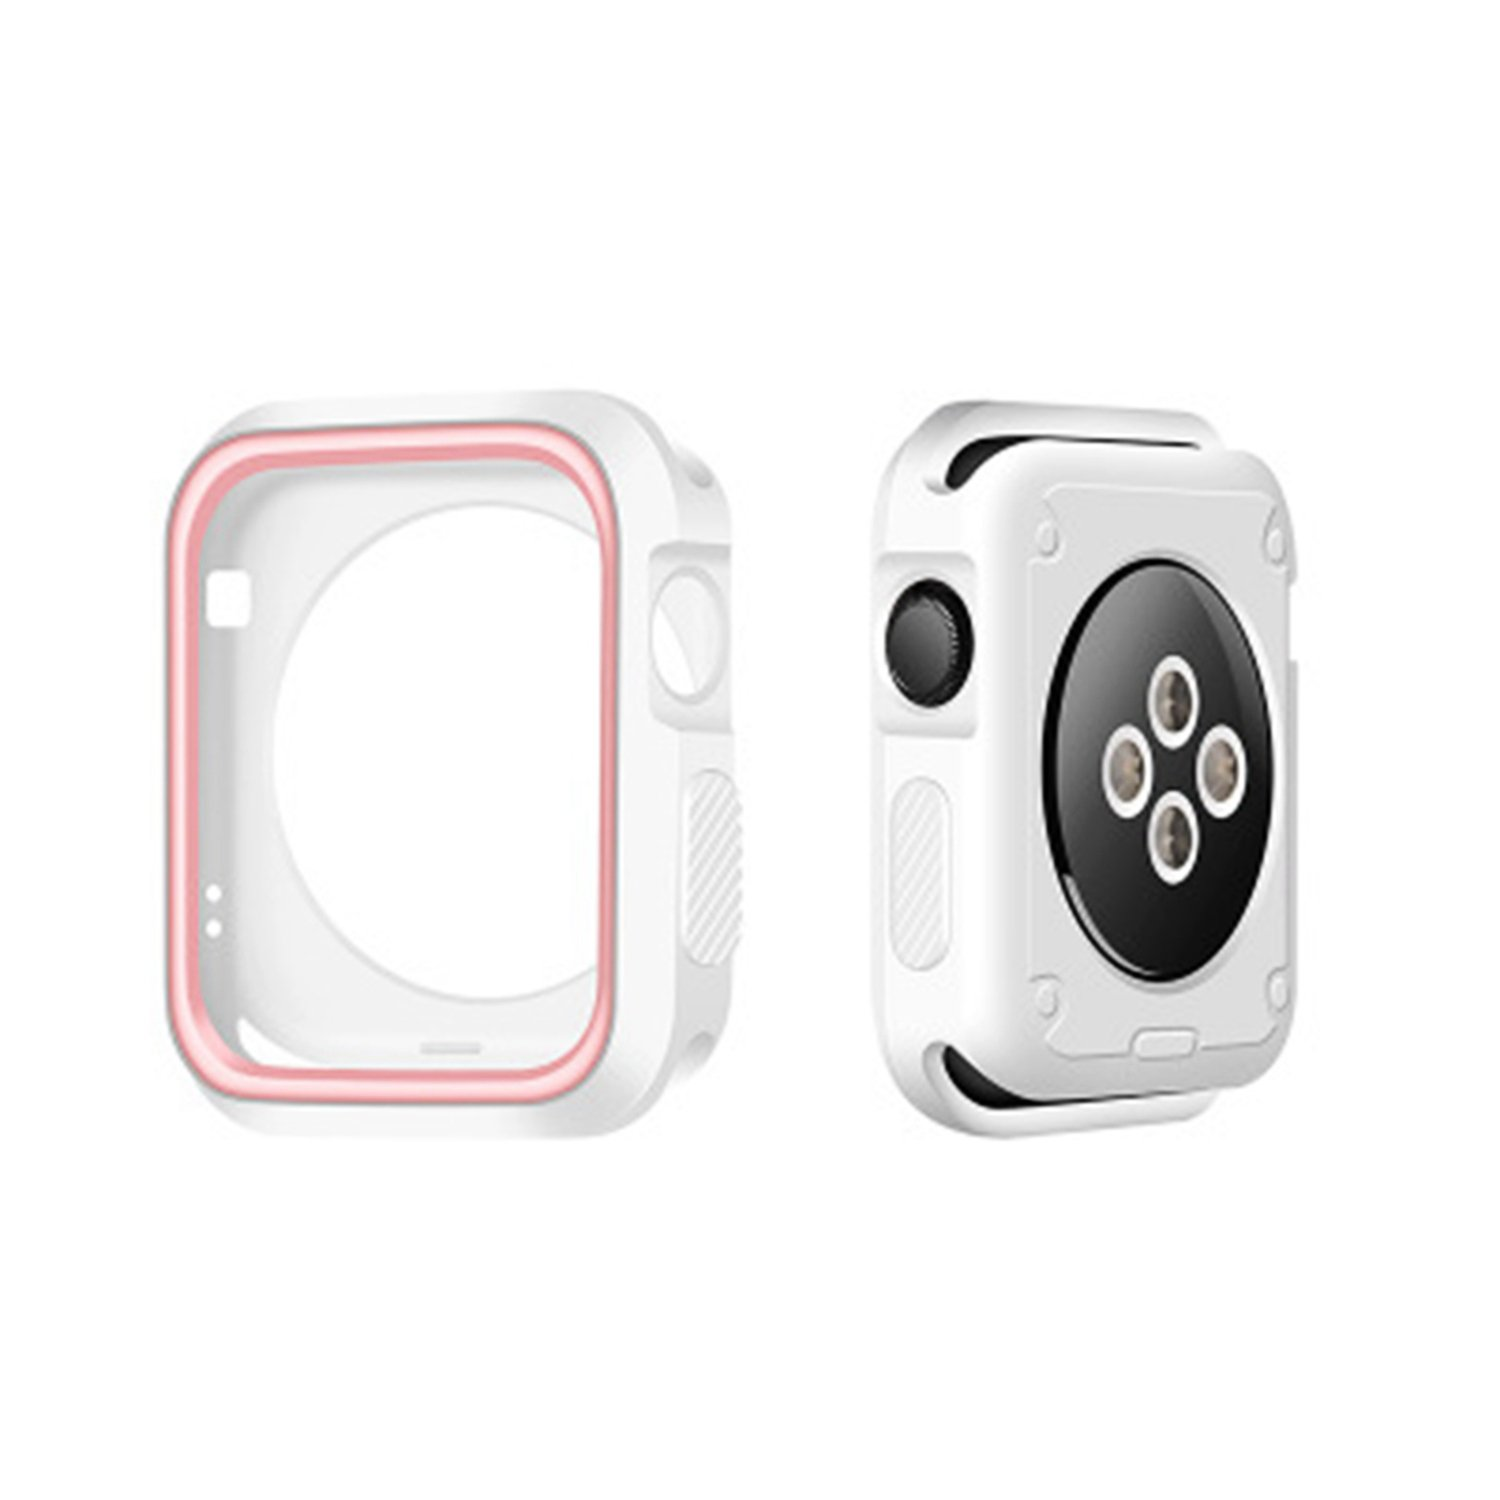 Morenitor for Apple Watch Case, 38mm Double Color Soft Silicone TPU Bumper Plating Protective Cover Case for Apple Watch iWatch Series 2 3 (White and Pink - 38 mm)